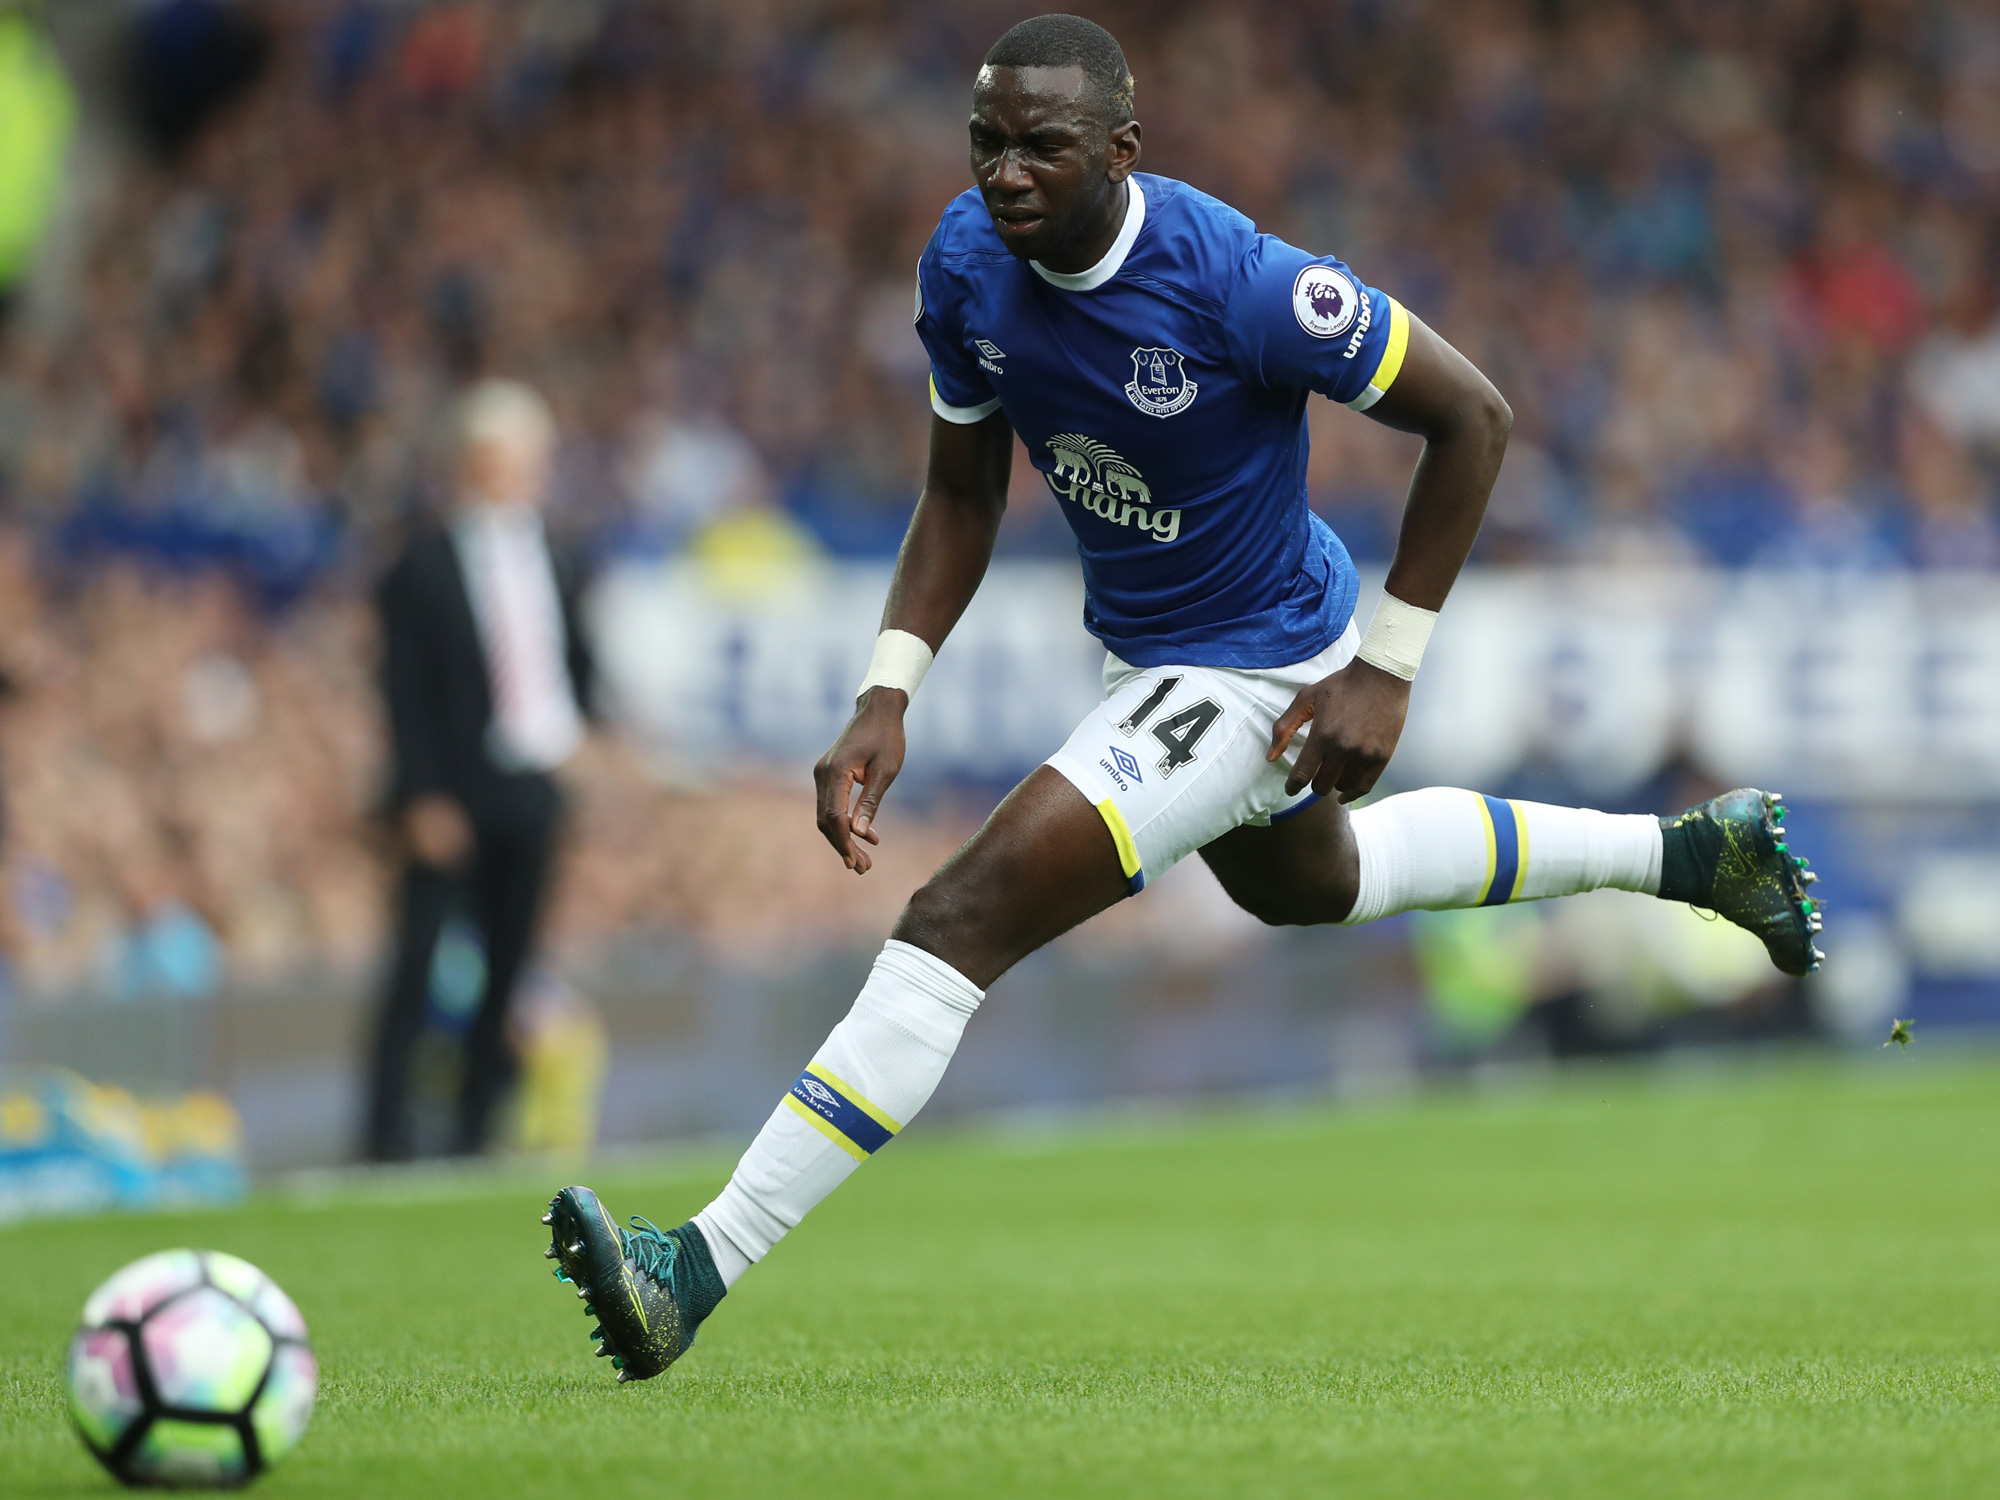 Yannick Bolasie has big expectations at Everton after leaving Crystal Palace